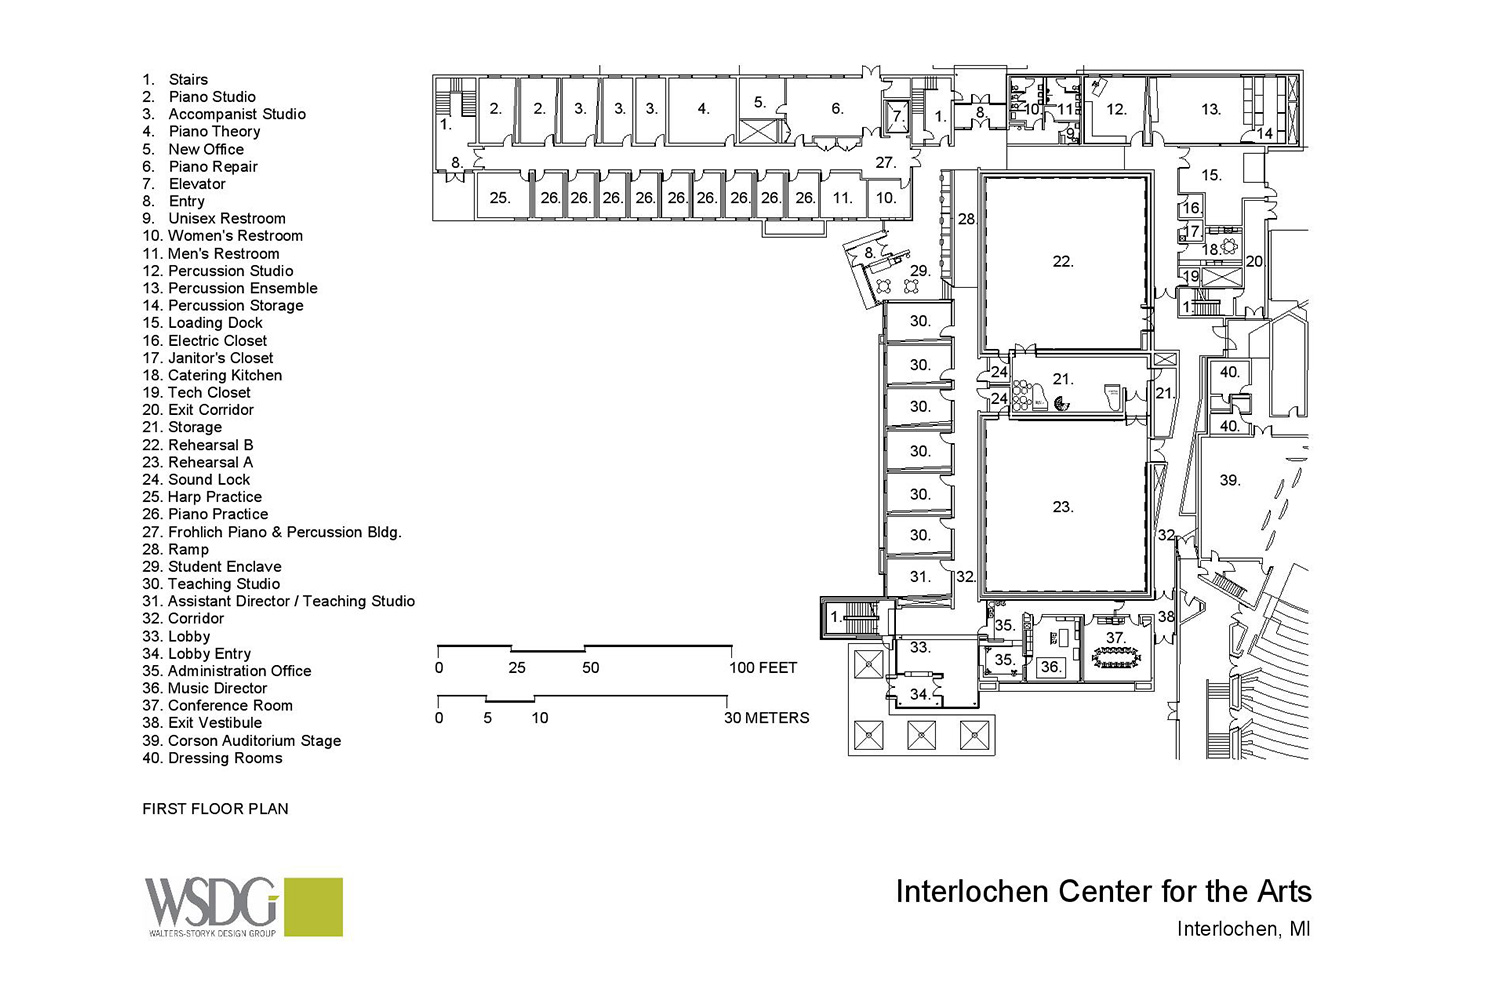 Interlochen has recently completed their new complex. A key component of the new complex is a state-of-the-art recording/teaching studio complex developed by WSDG. Presentation drawing 5.